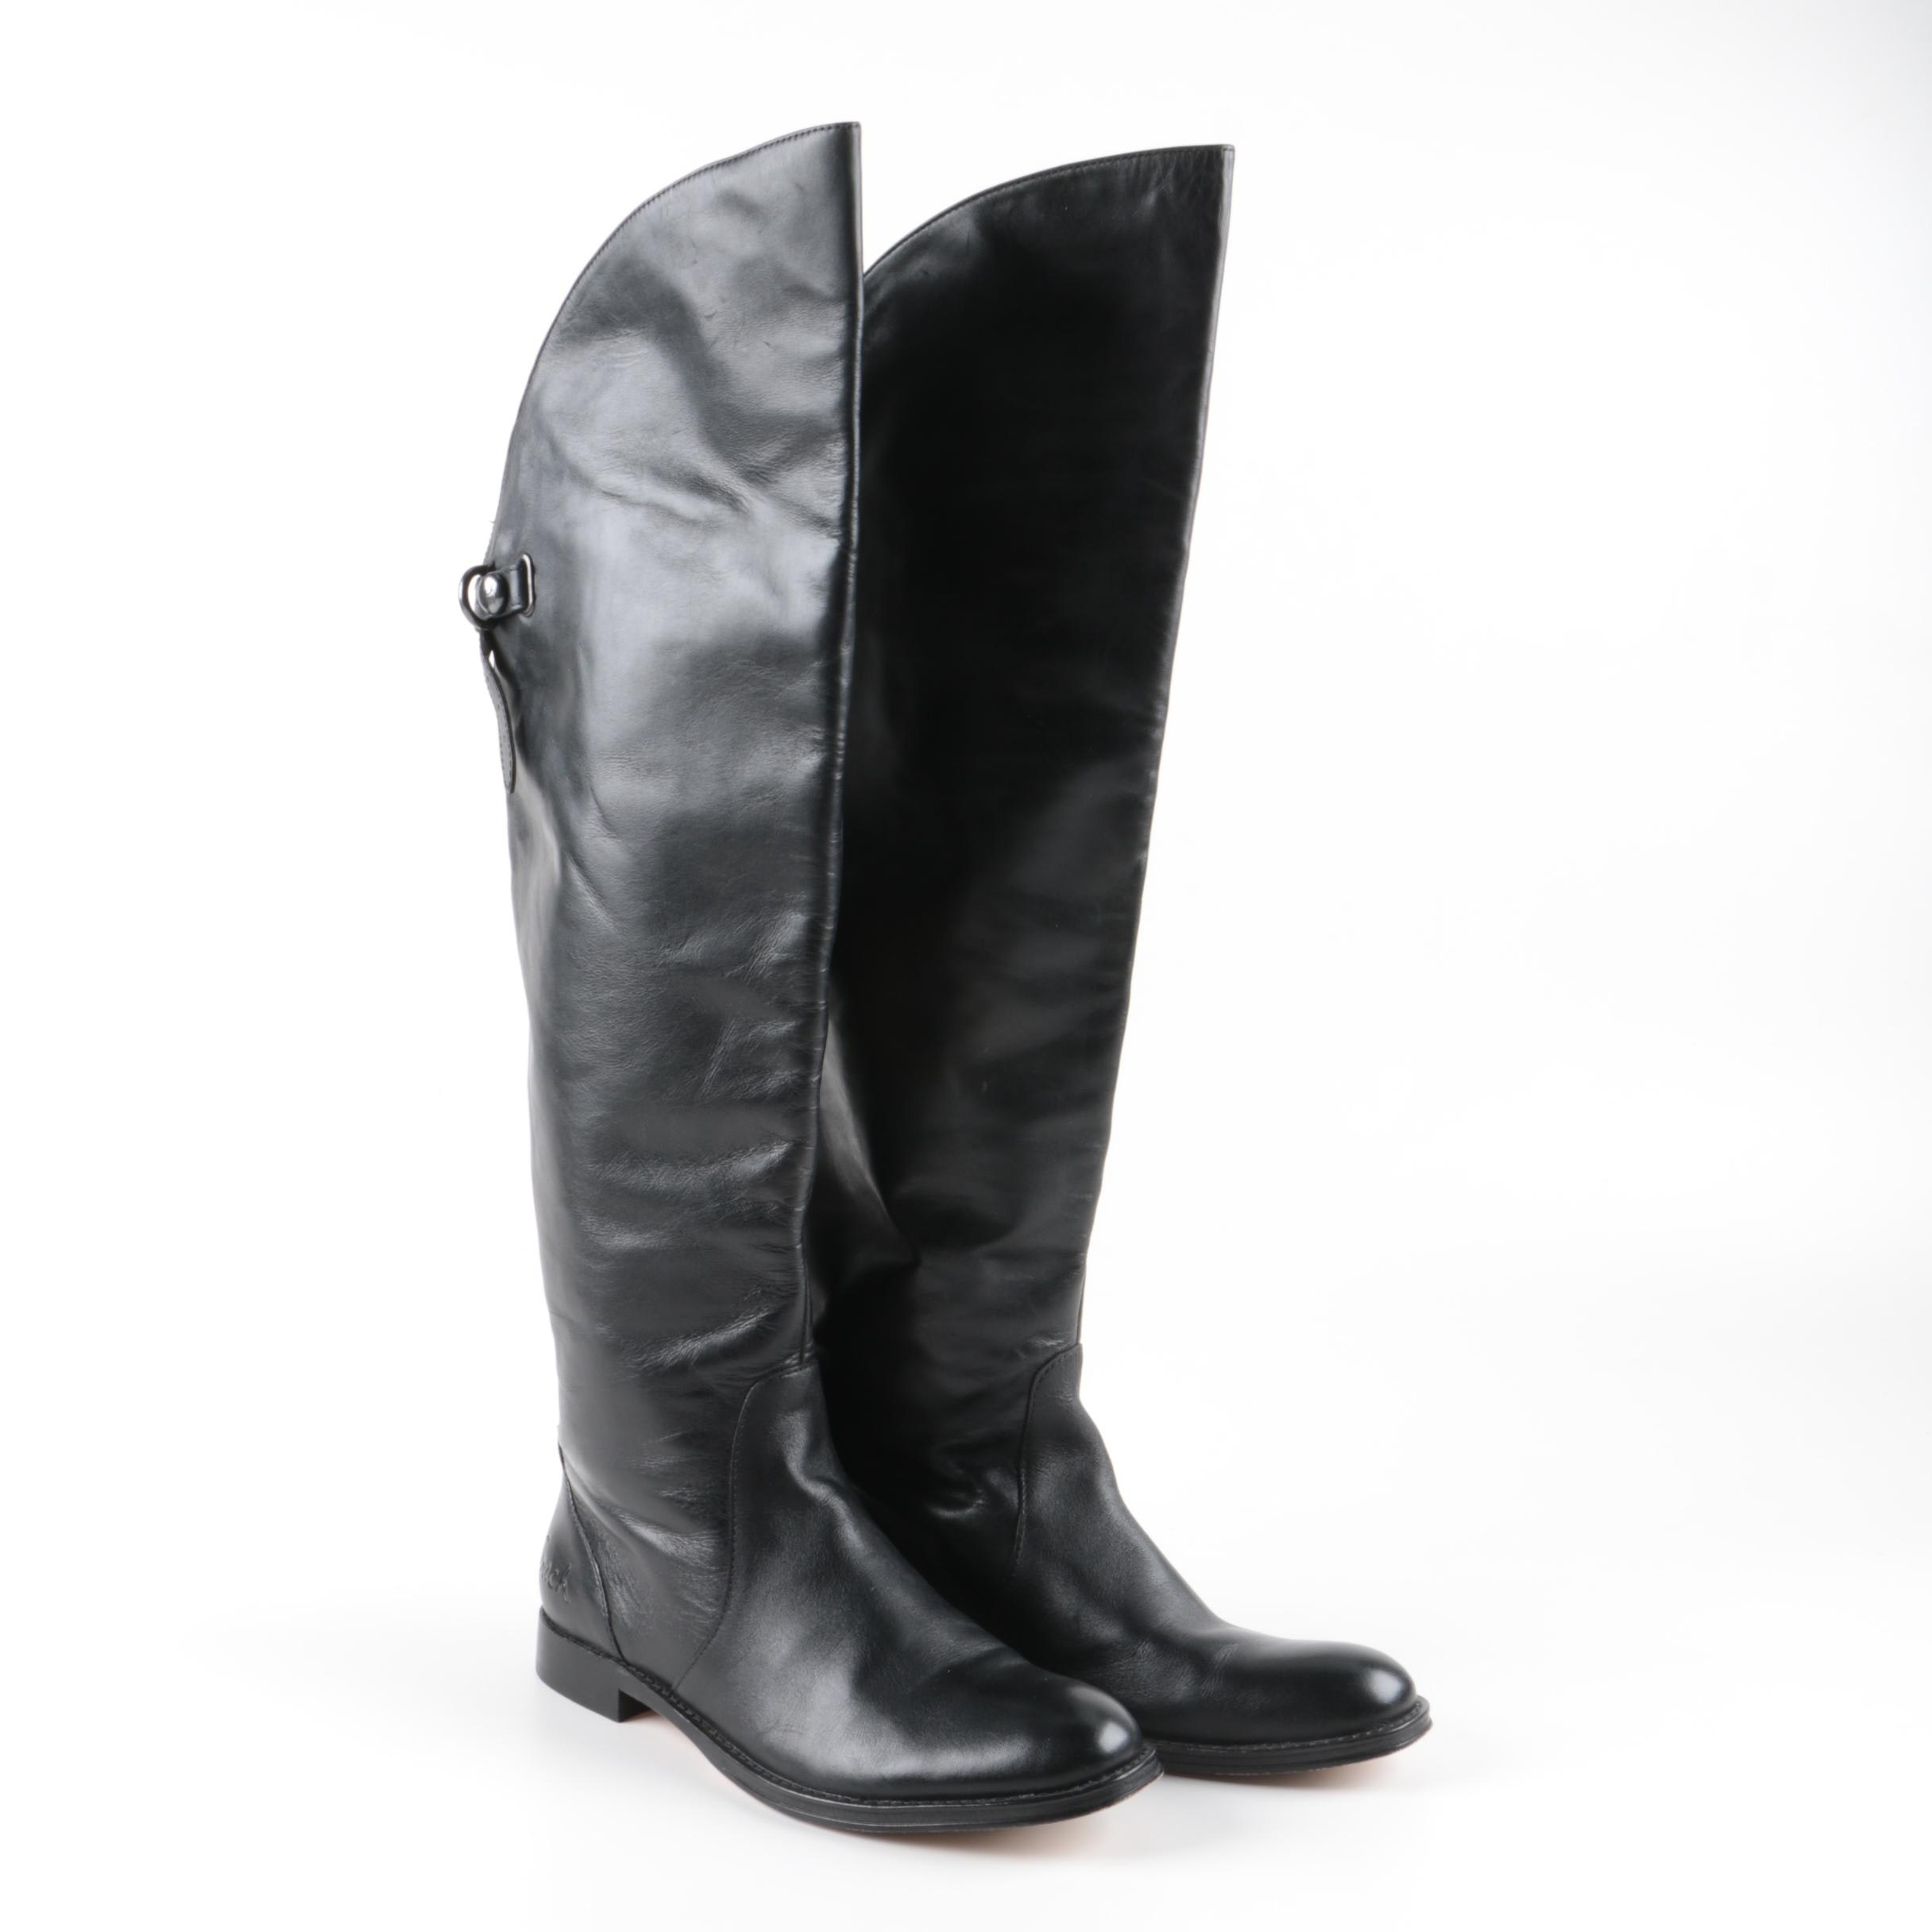 Women's Coach Cheyenne Black Leather Boots